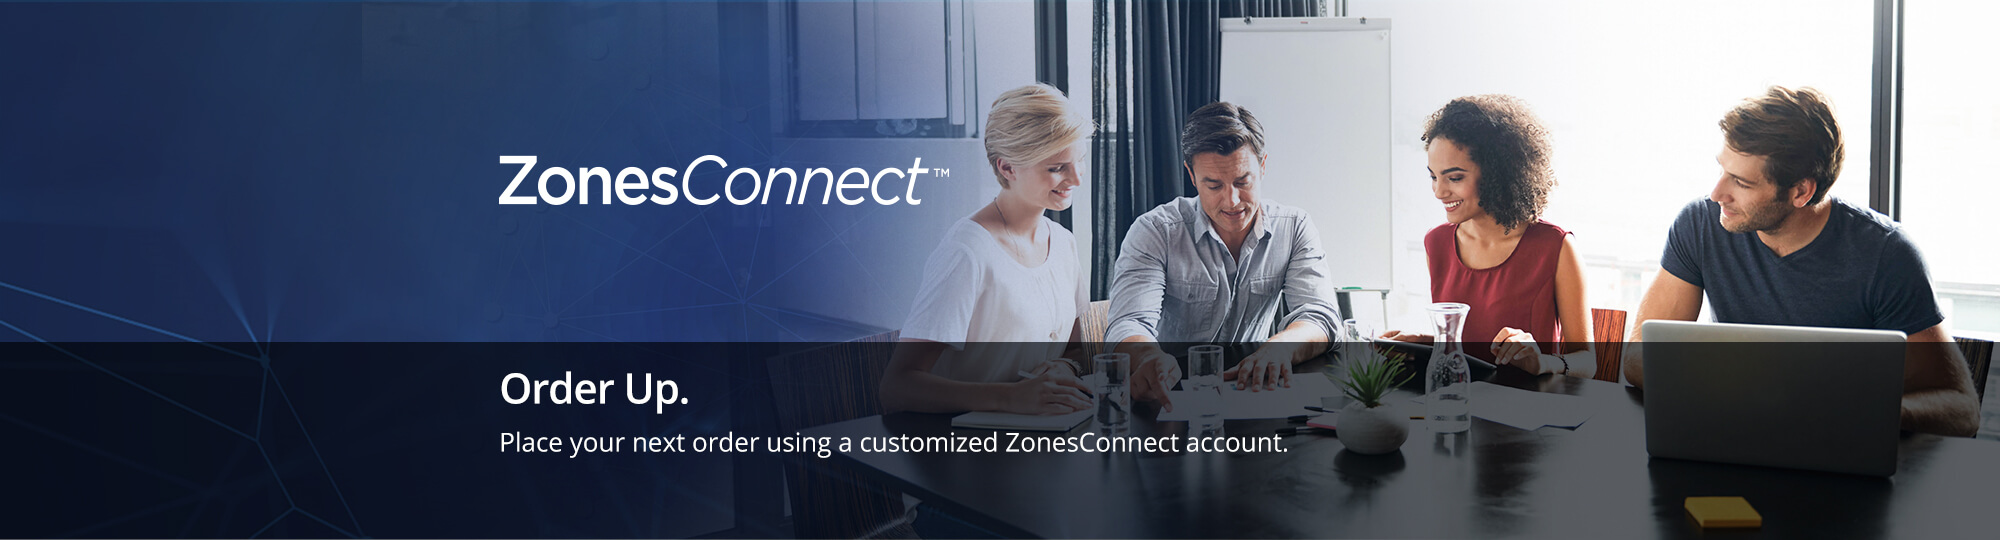 Cisco security solutions from Zones